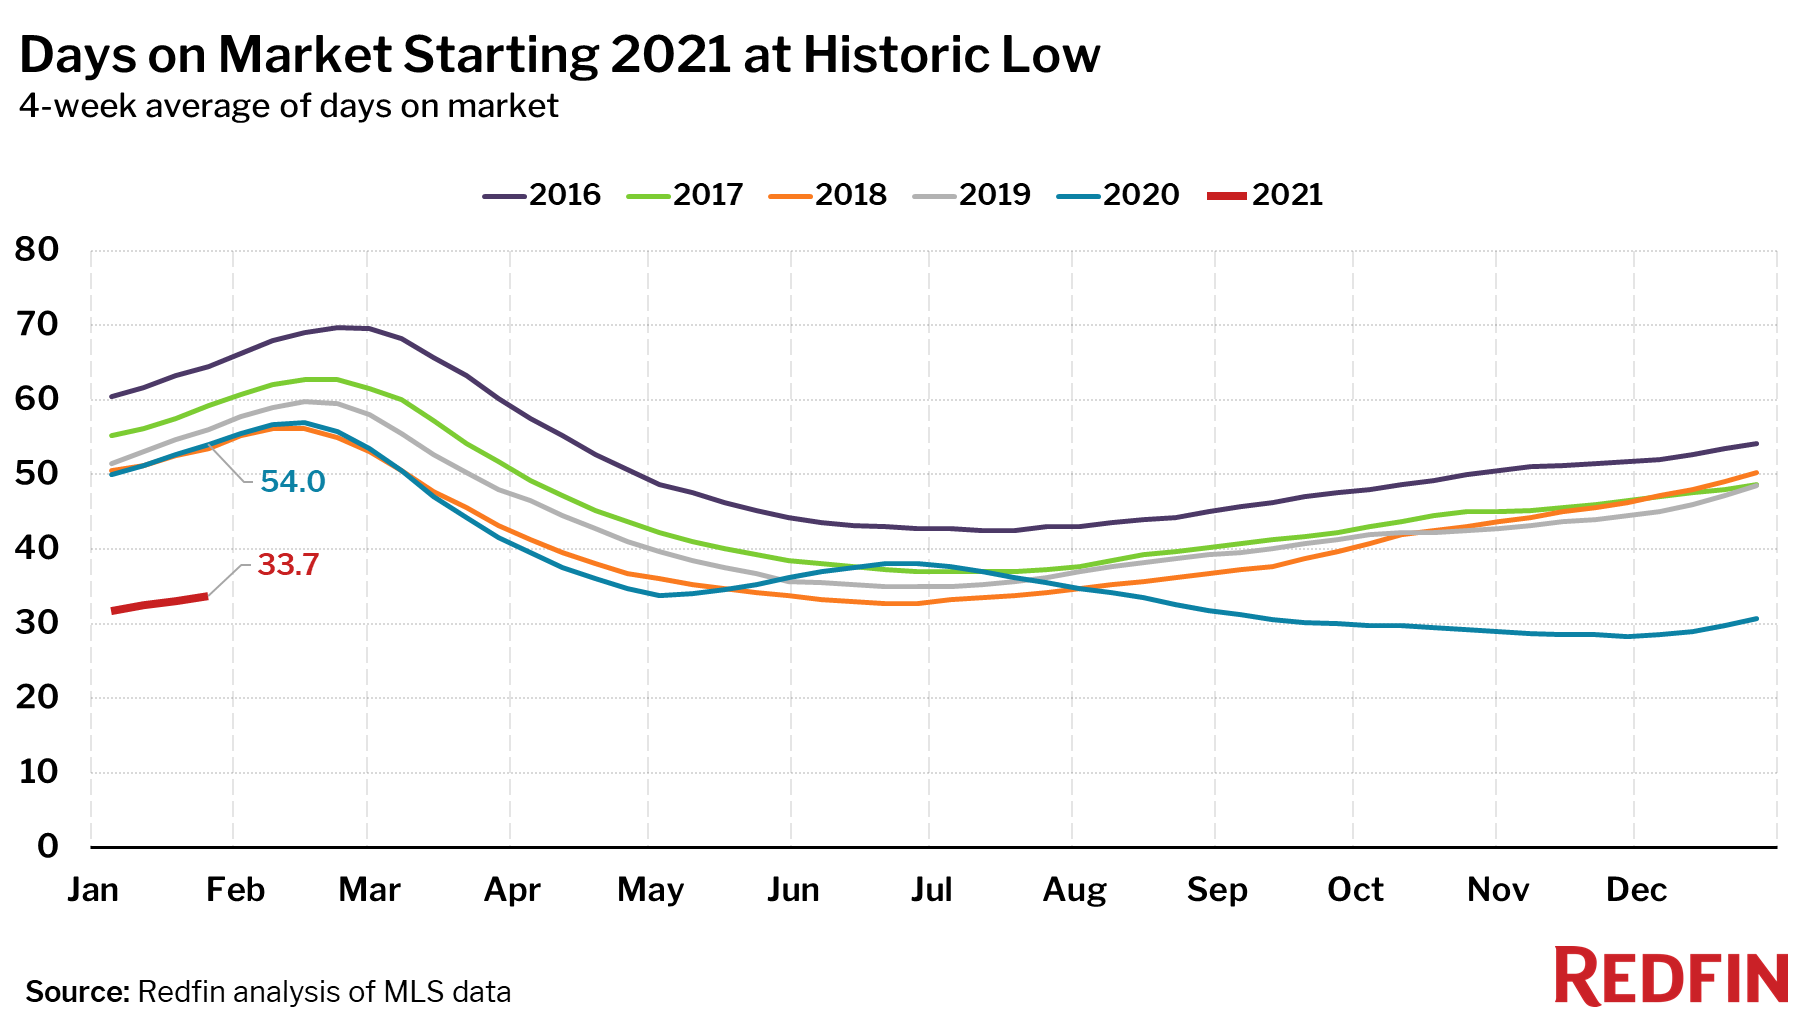 Days on Market Starting 2021 at Historic Low